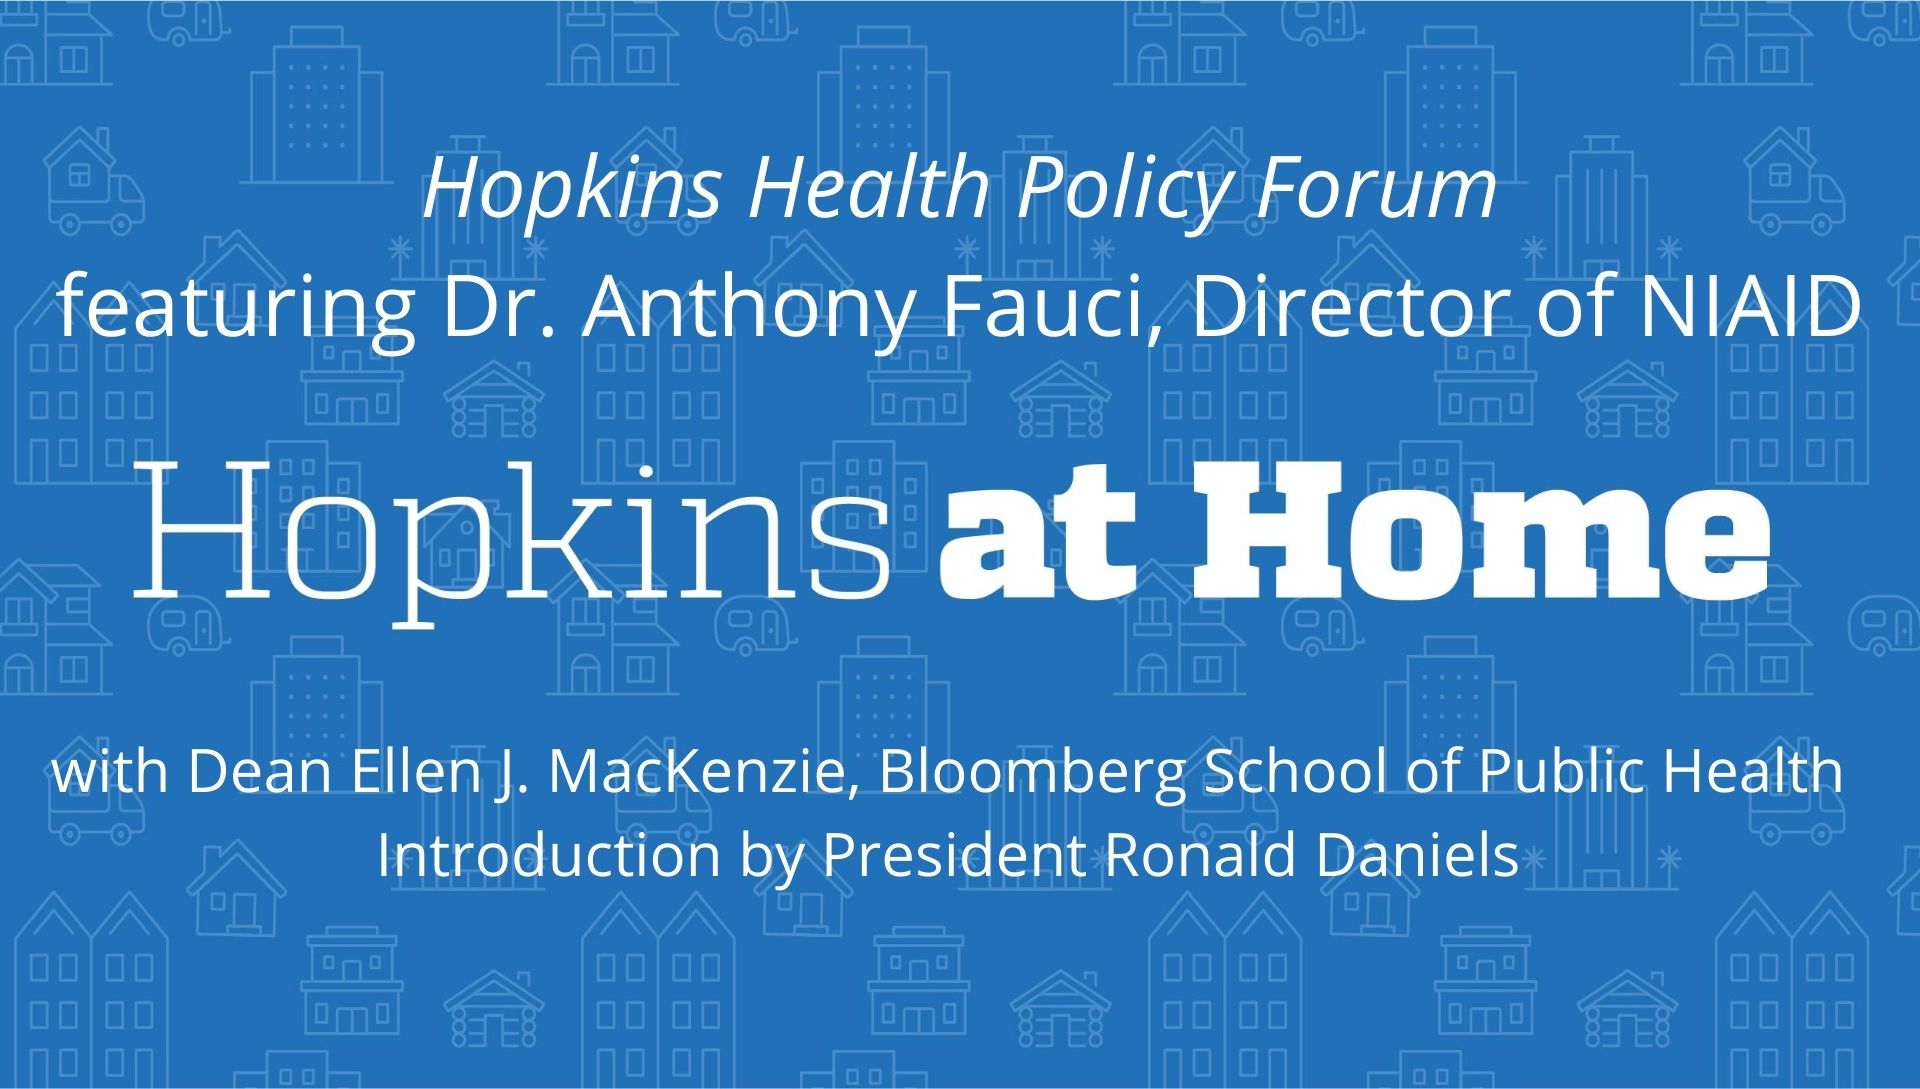 Intro graphic for Health Policy Forum